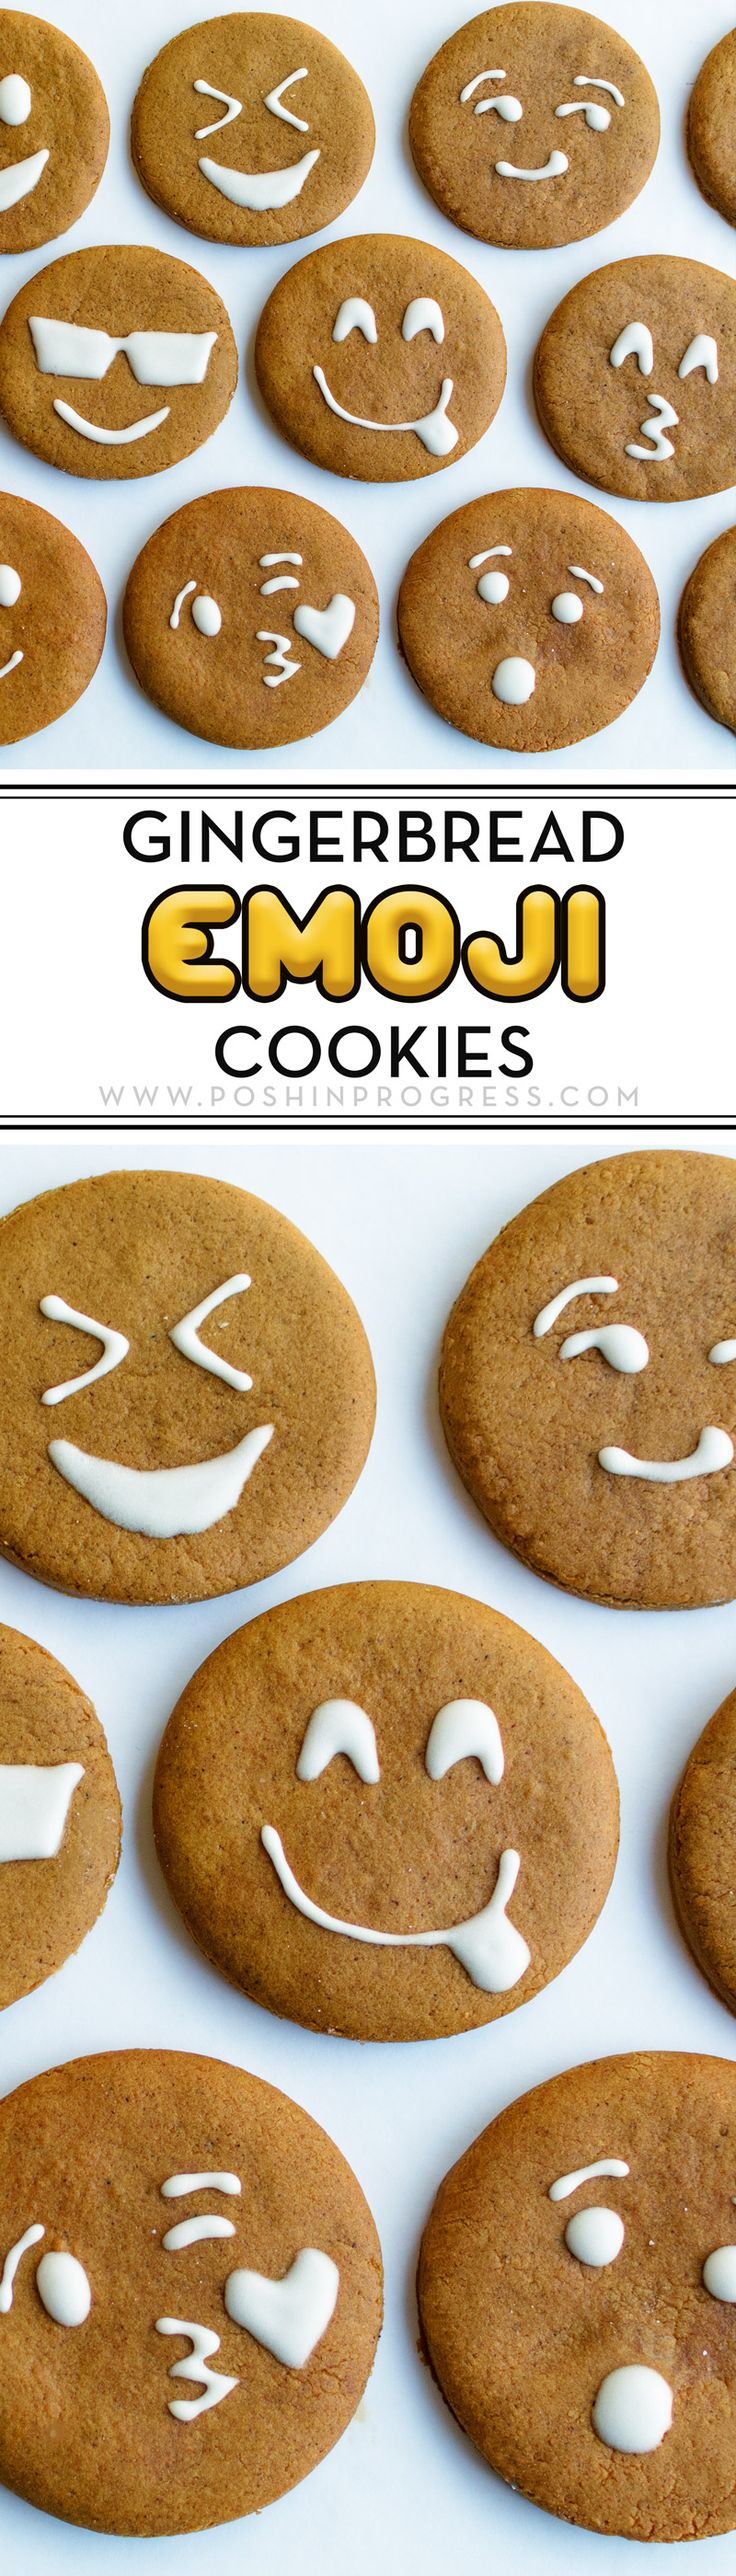 How leftover dough and the tradition of injecting pop culture into Christmas traditions turned into these cute gingerbread emoji cookies.